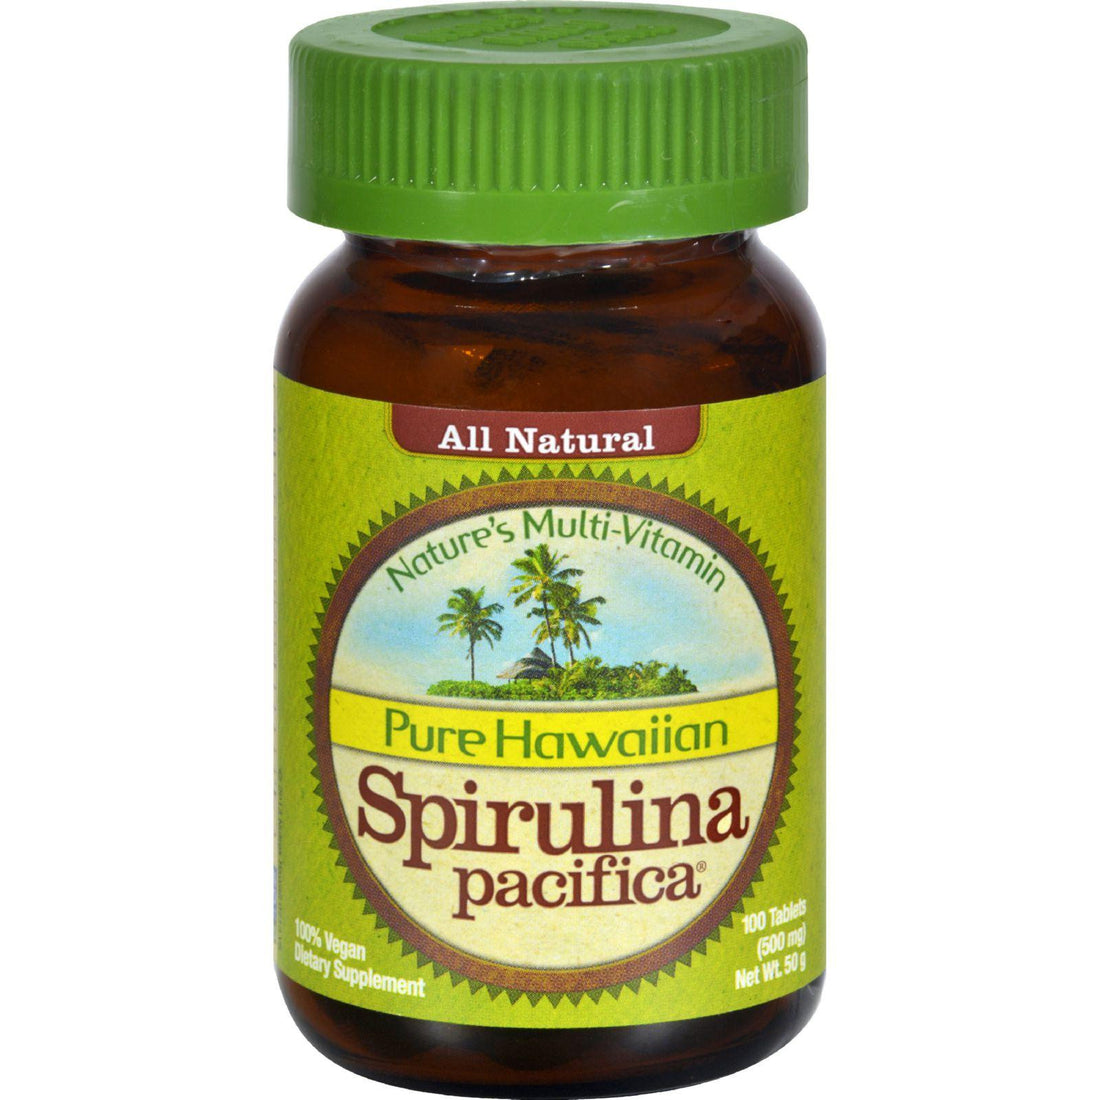 Mother Mantis: Nutrex Hawaii Pure Hawaiian Spirulina Pacifica - 500 Mg - 100 Tablets Nutrex Hawaii